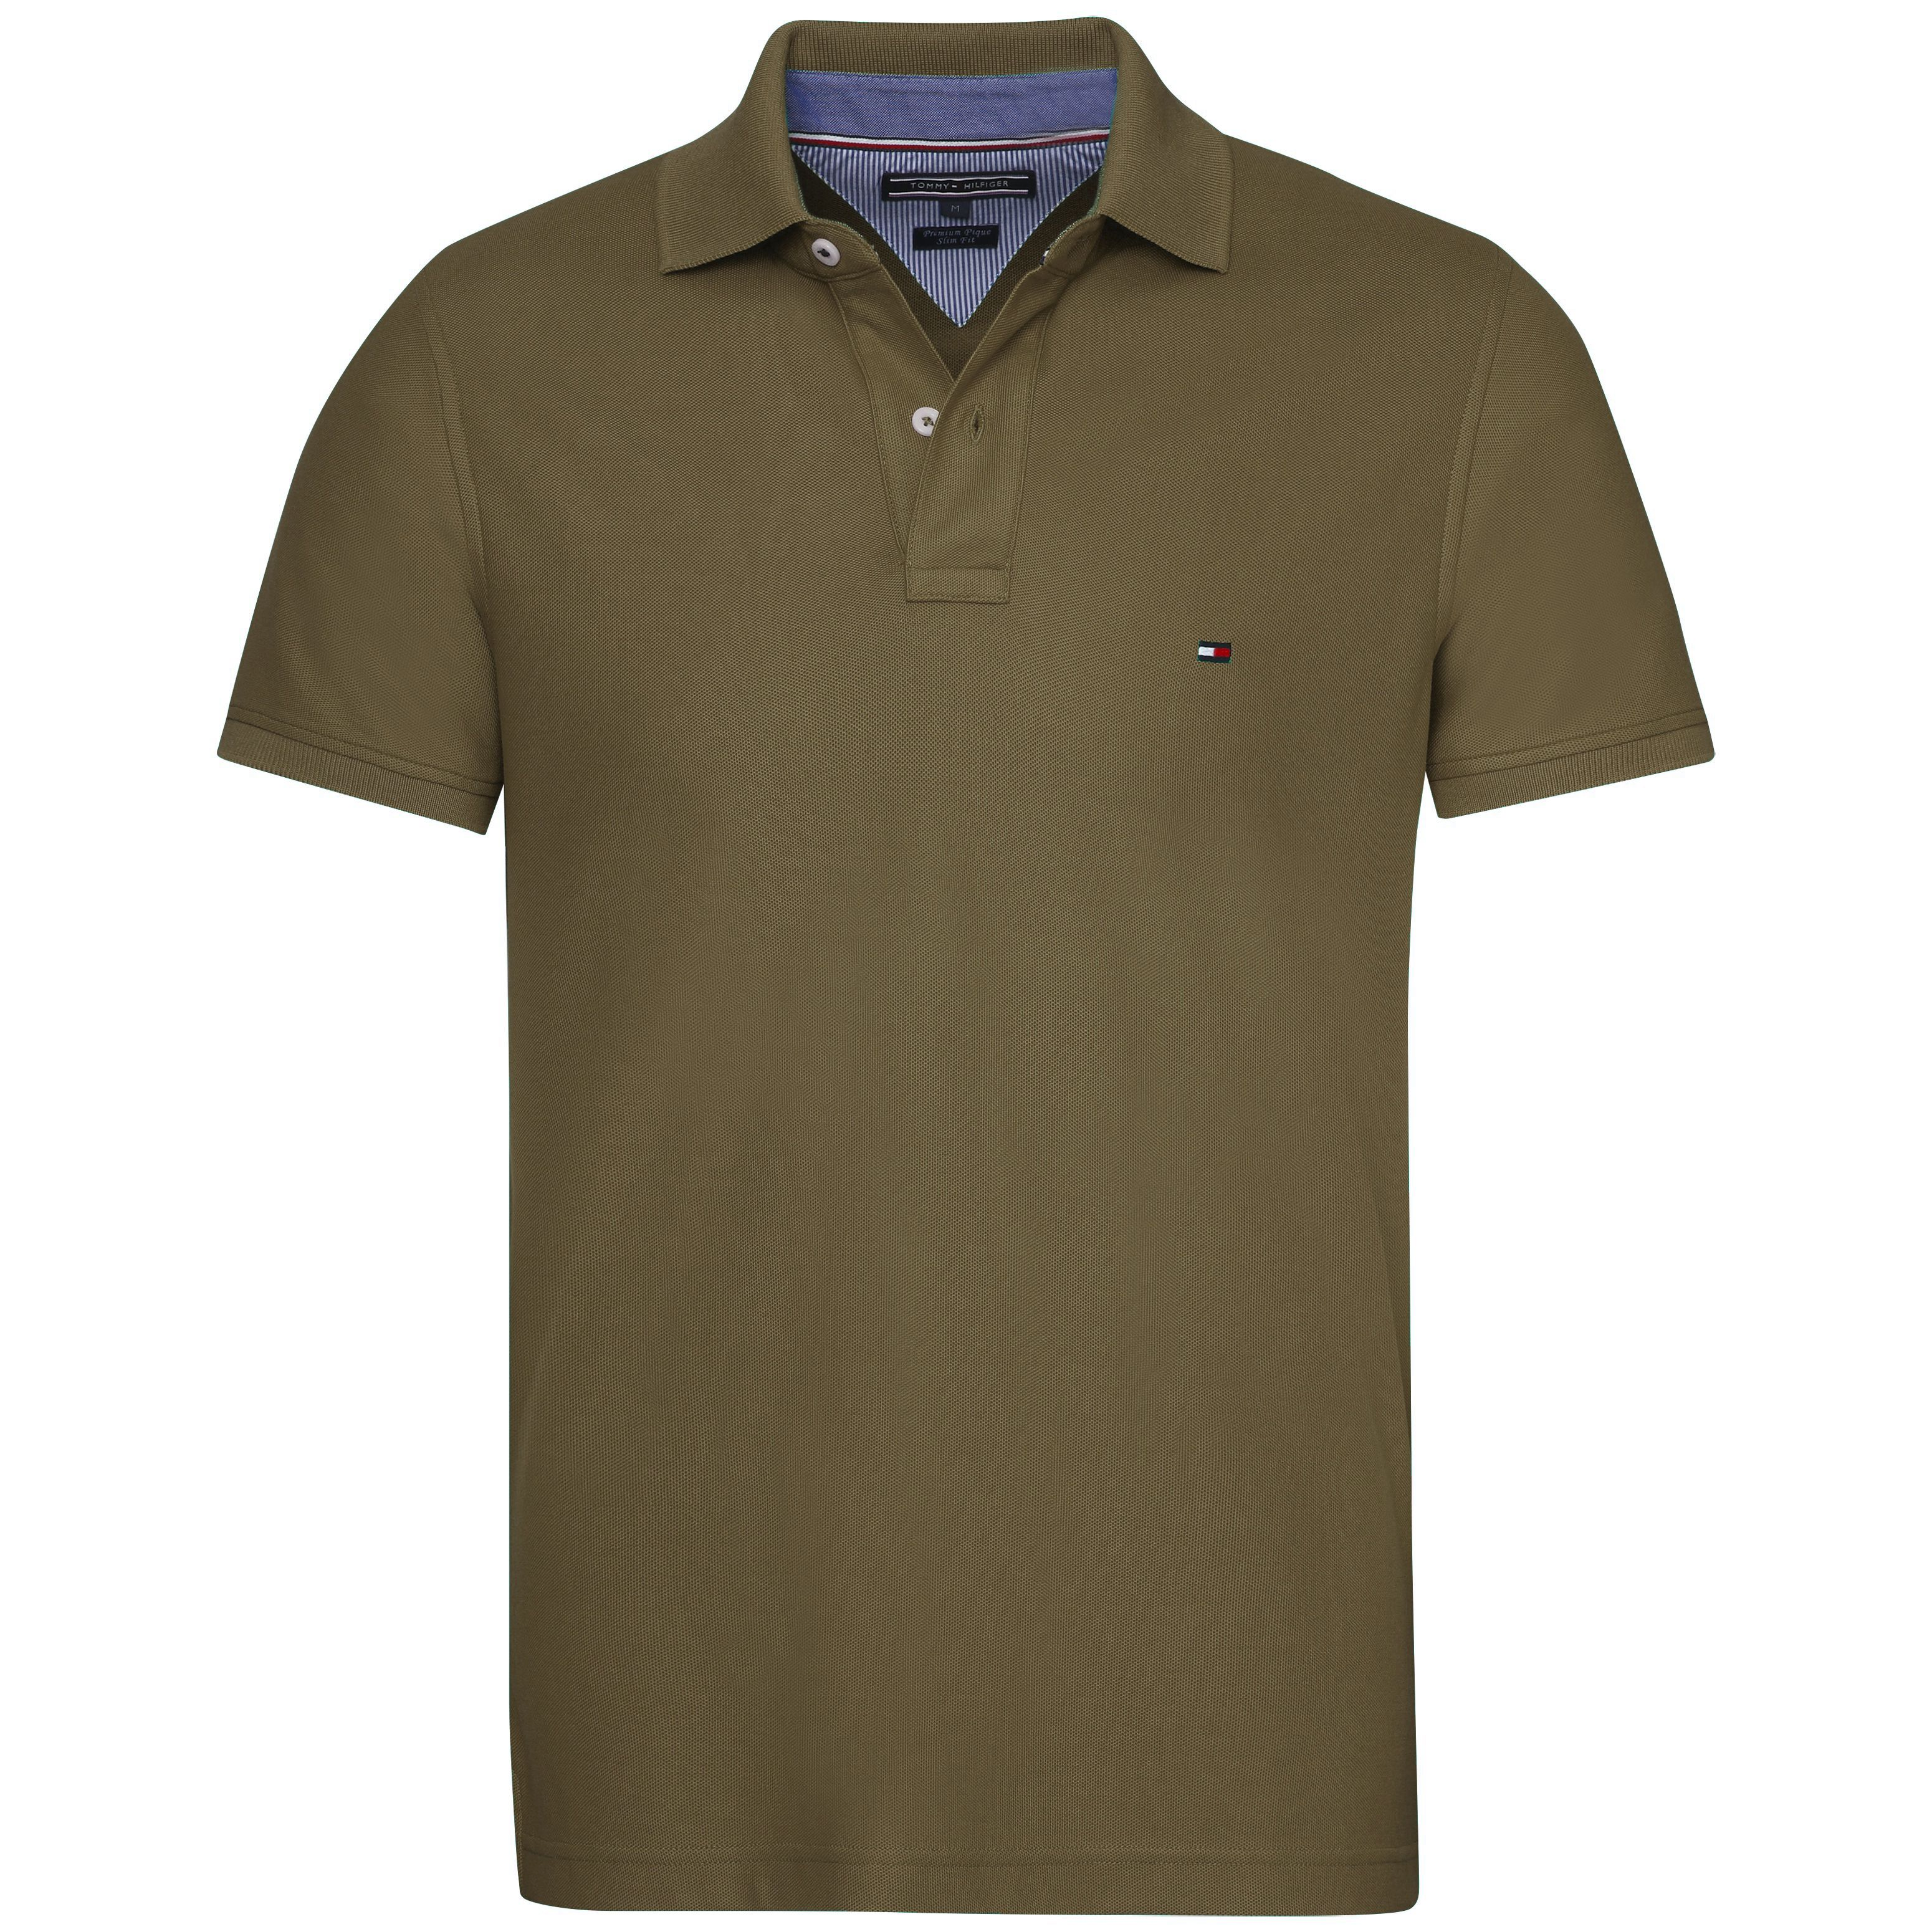 Men's Tommy Hilfiger Performance polo top, Green